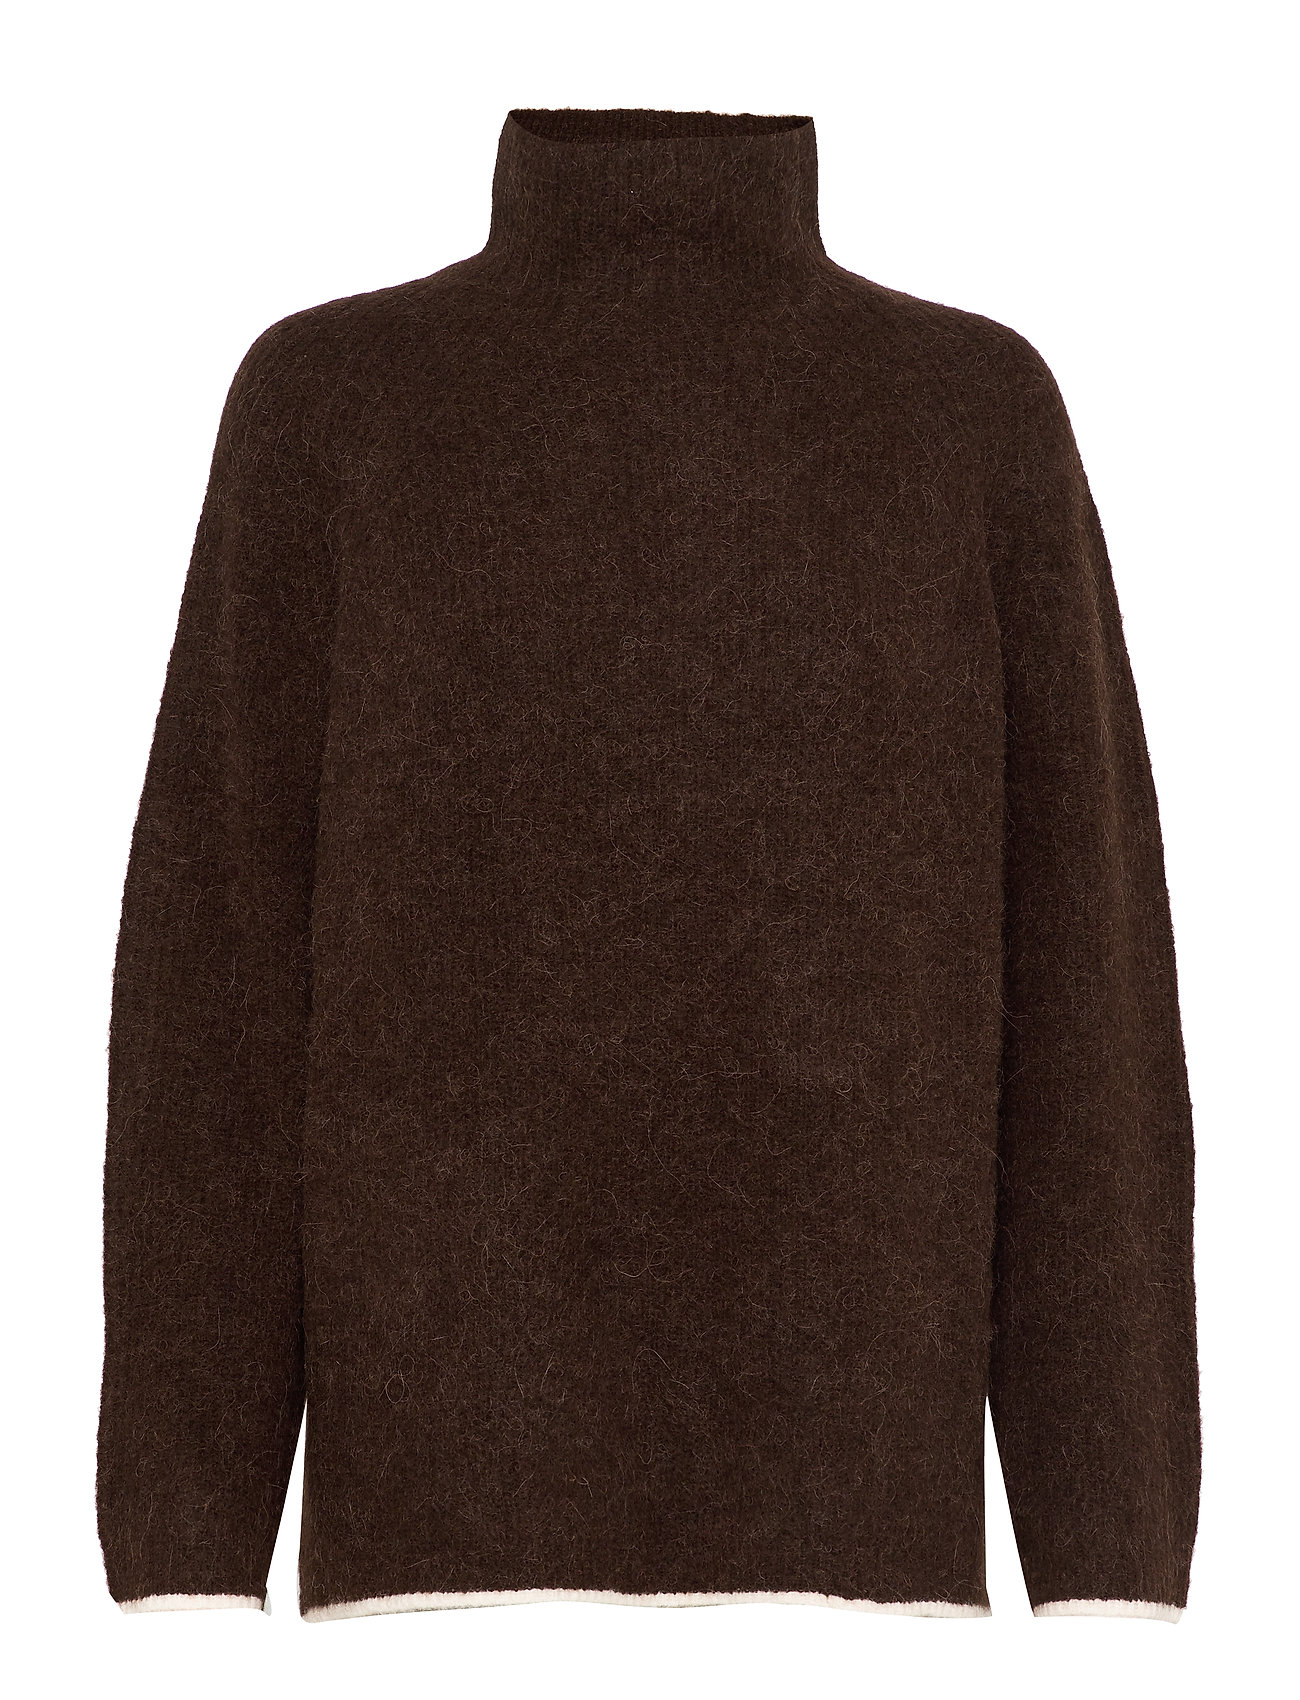 By Malene Birger ELLISON - WARM BROWN